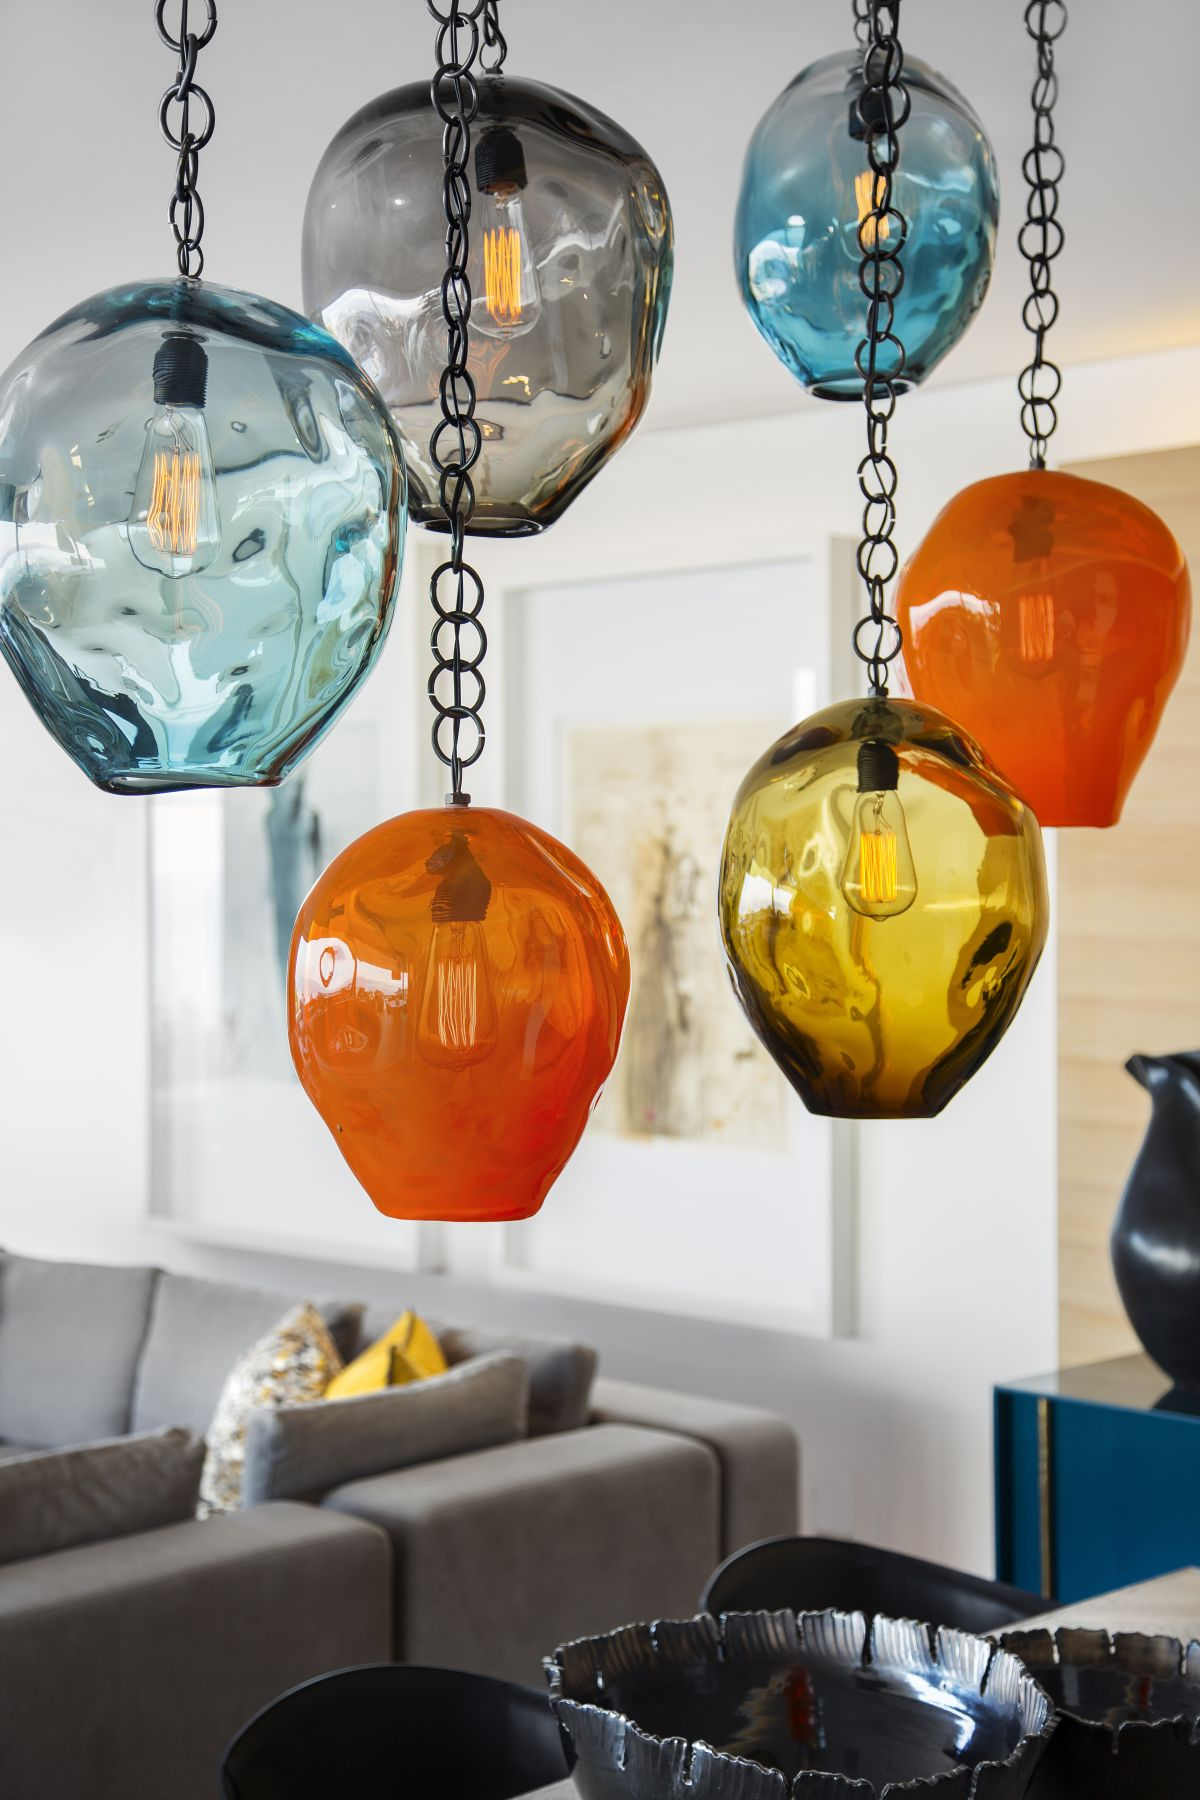 All these blown glass pendant lamps add color to the living area and make the space look playful